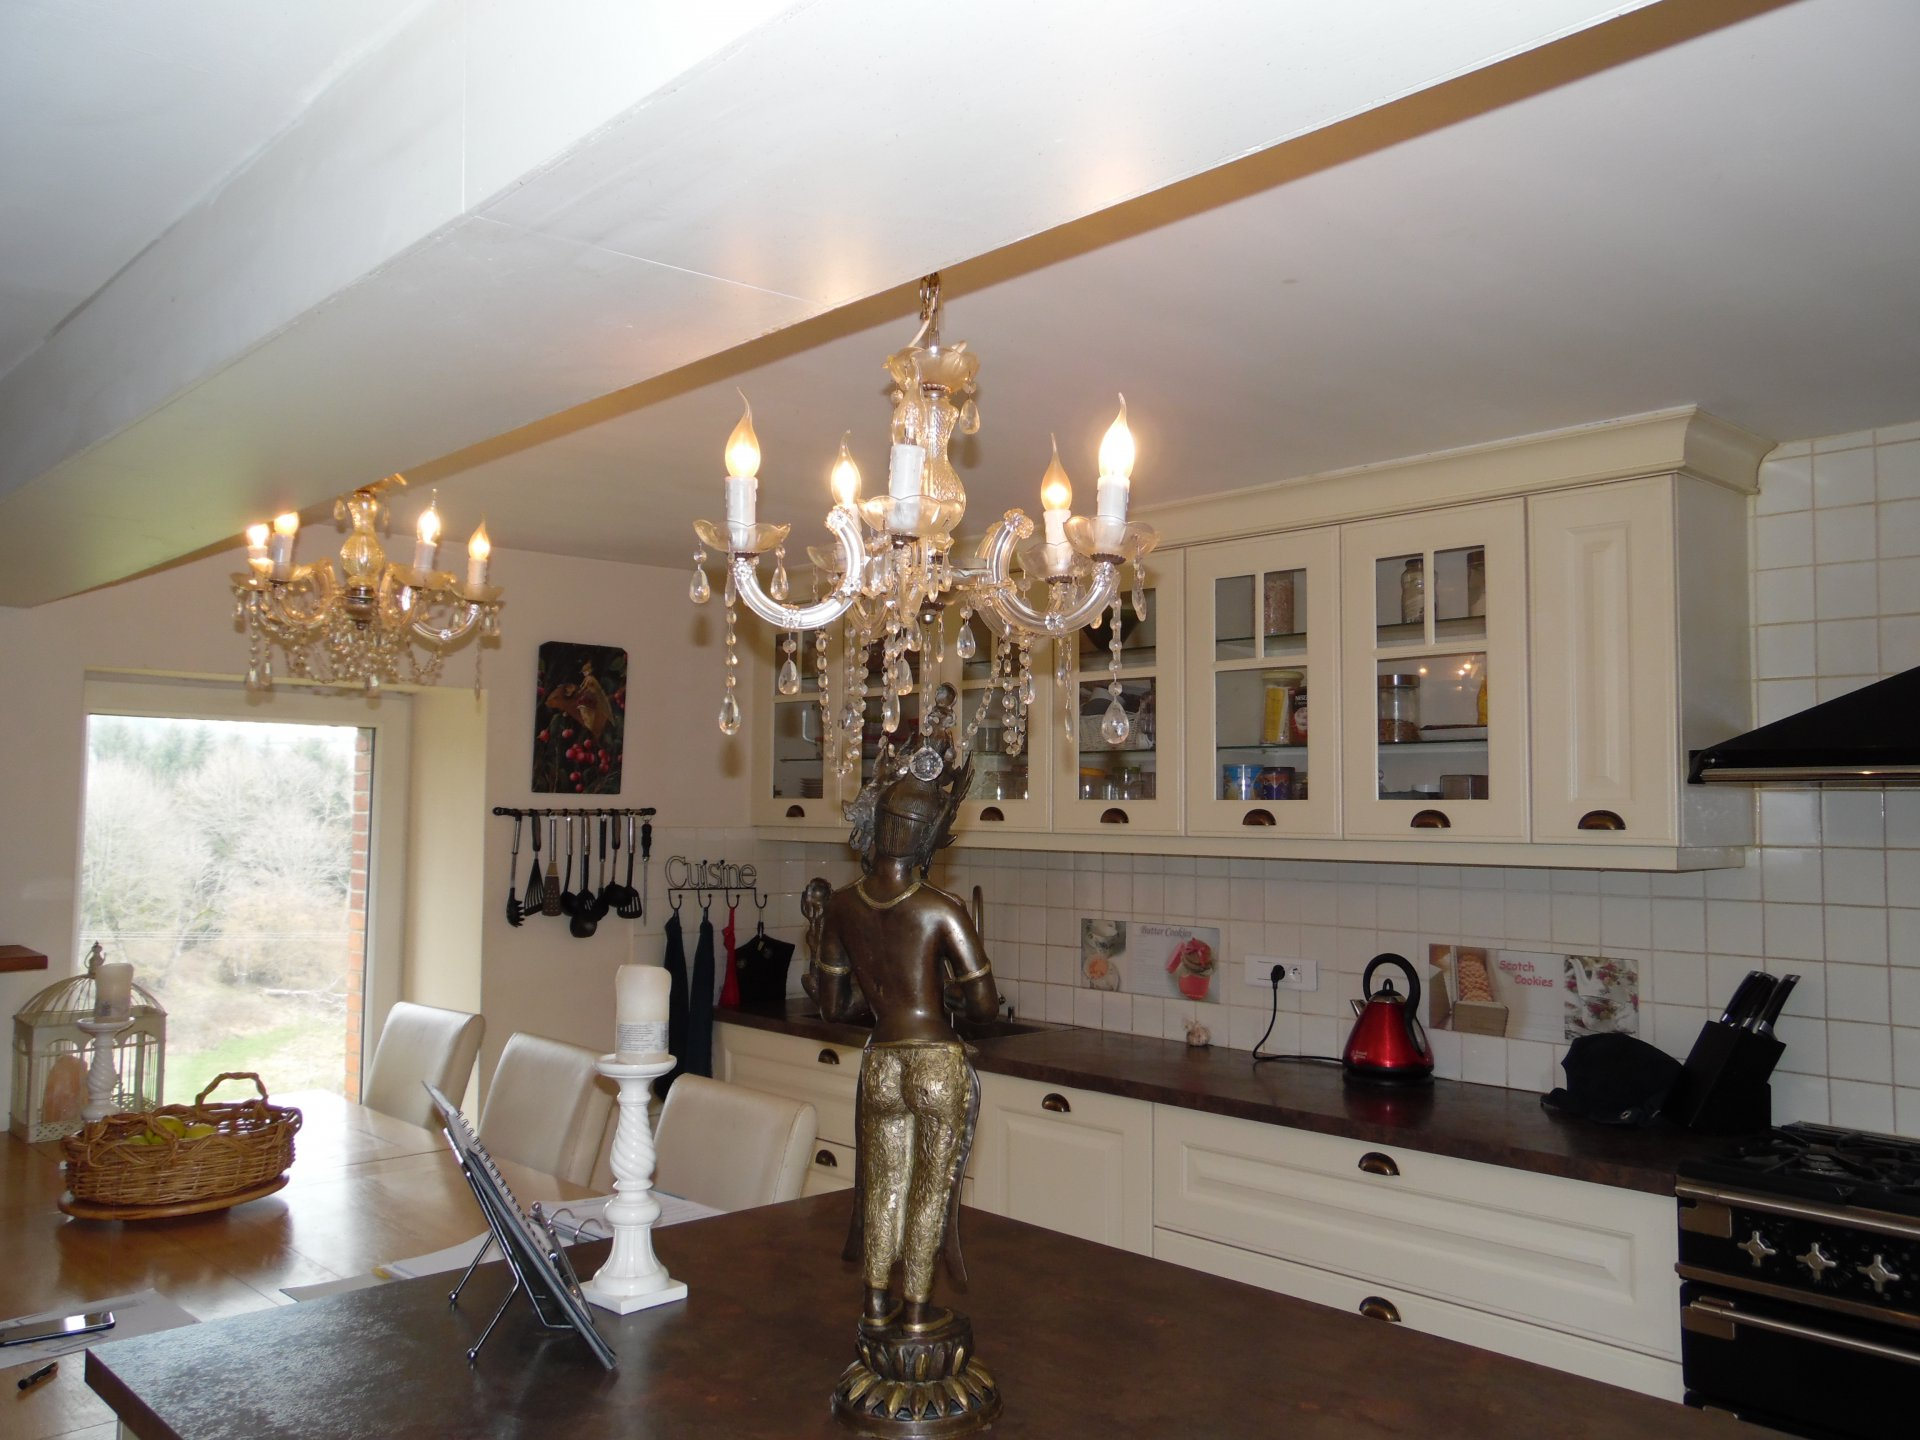 Chandelier, natural light, stainless steel